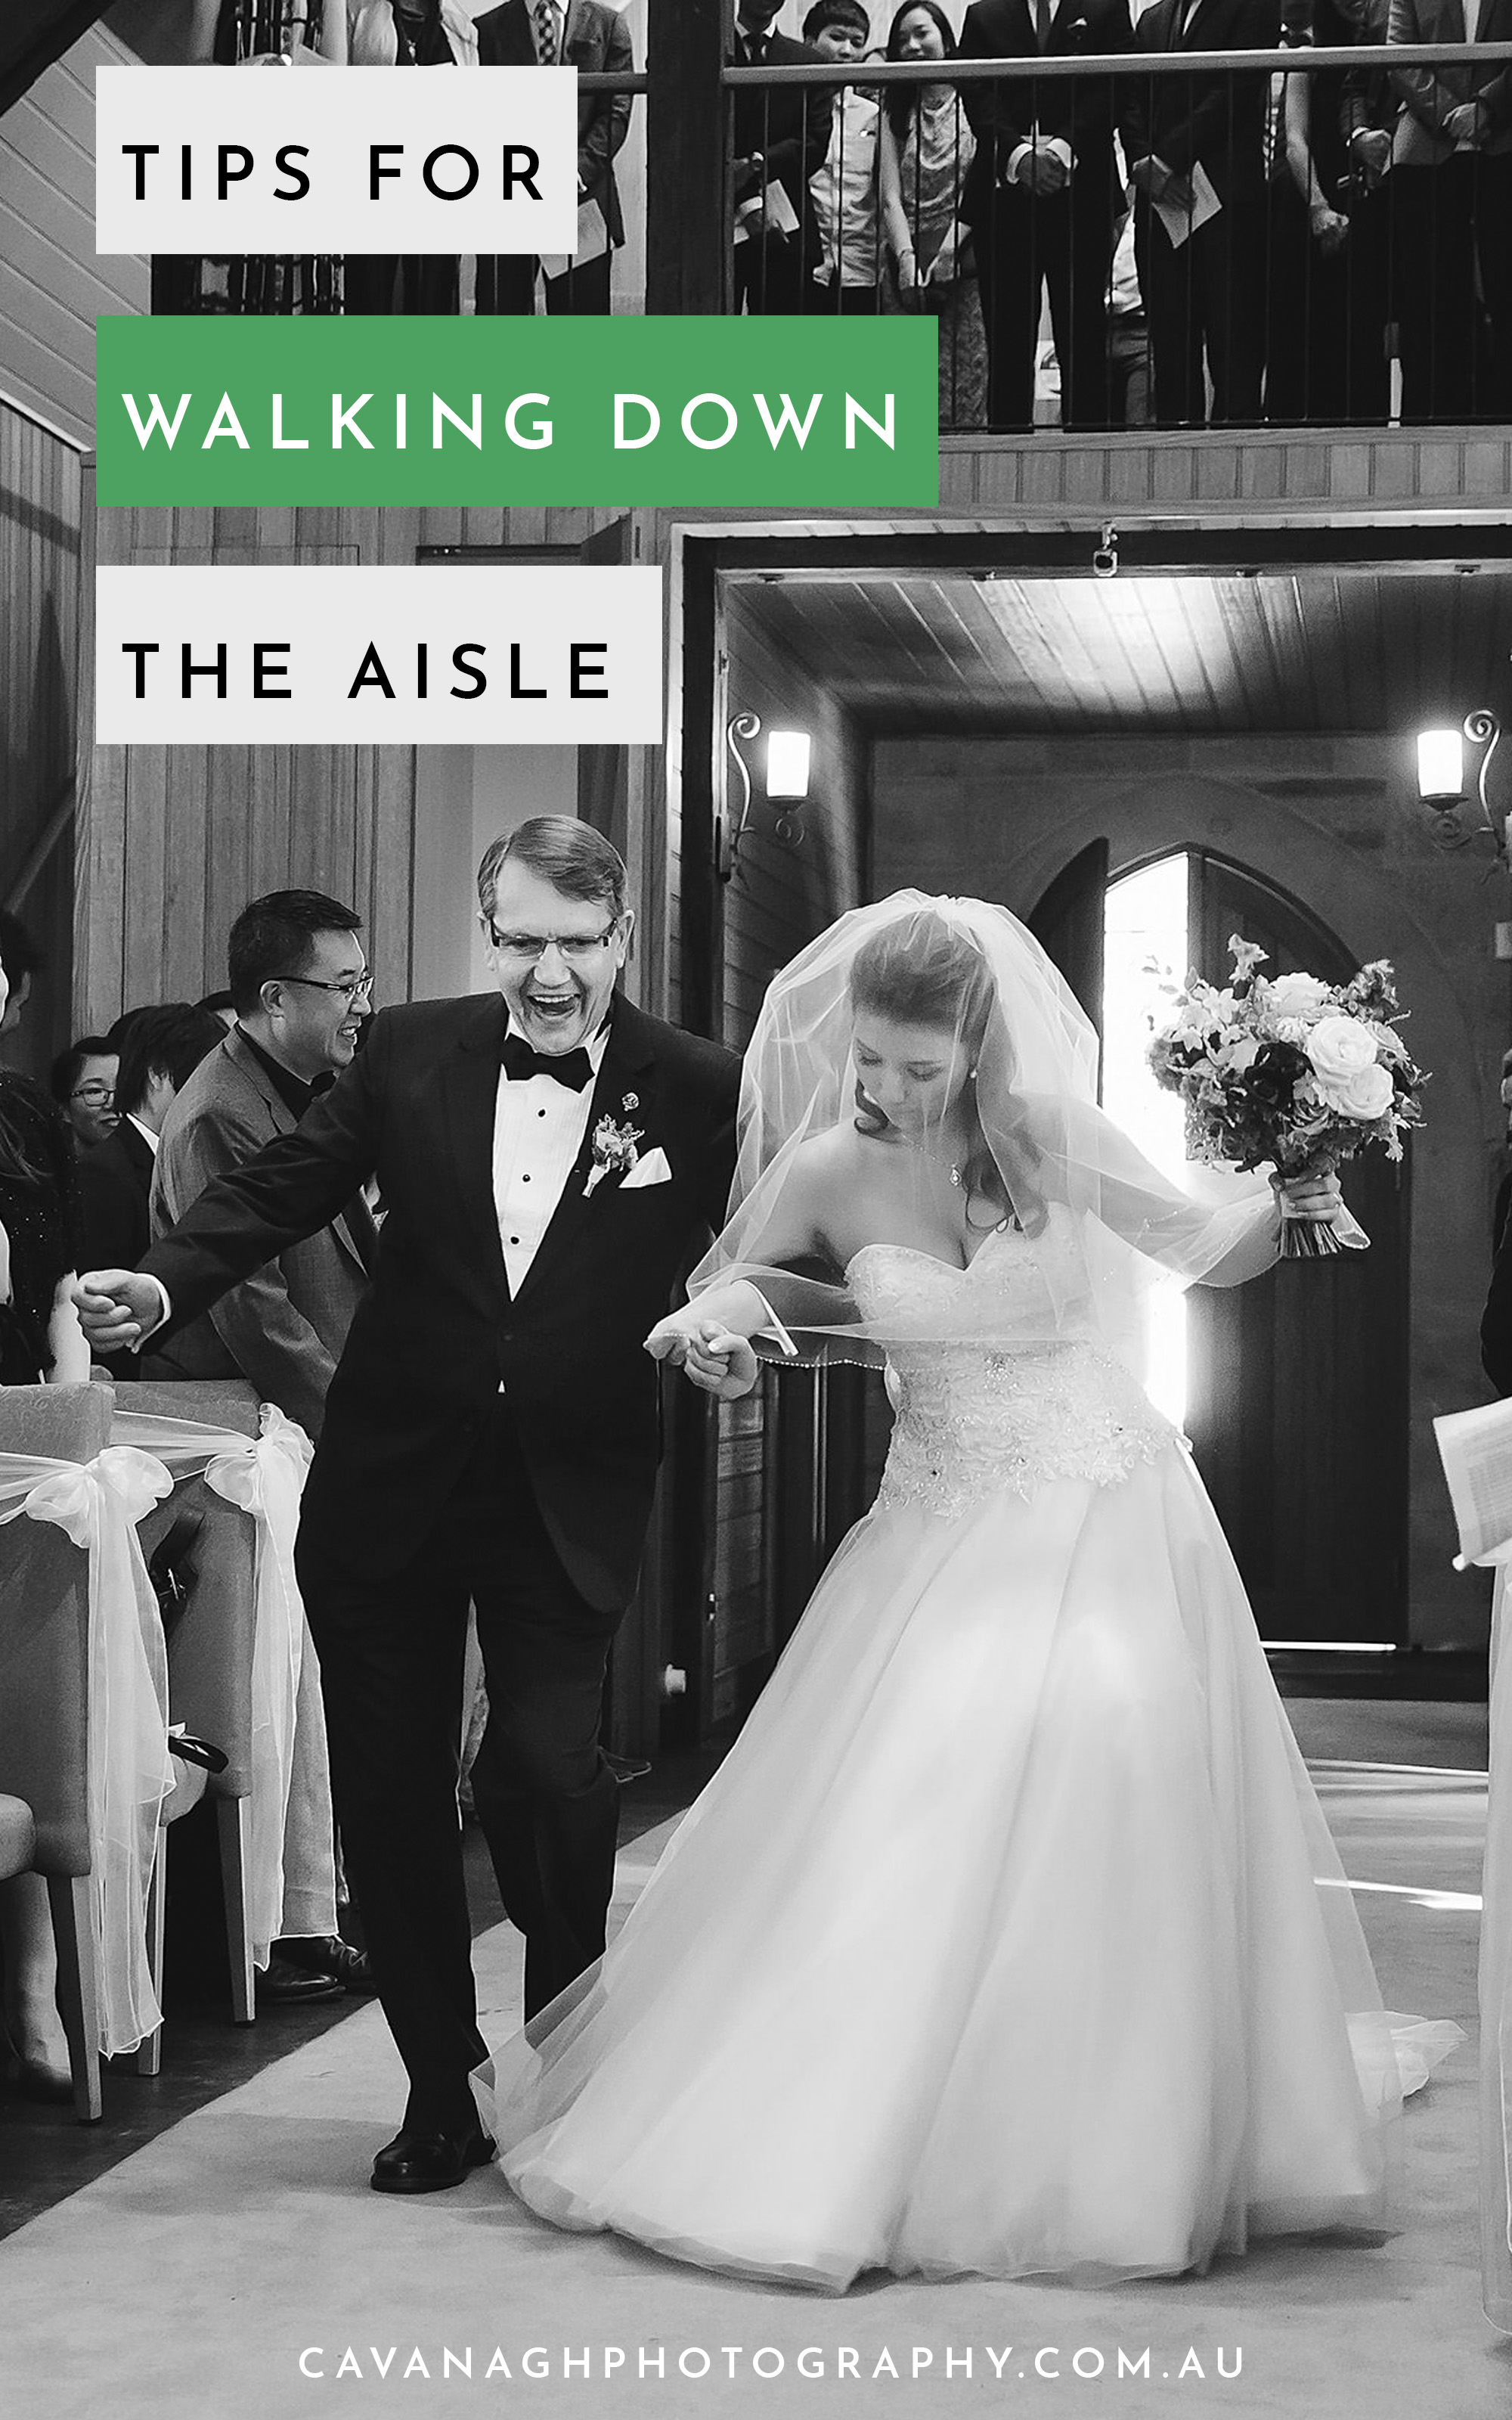 tips for walking down the aisle